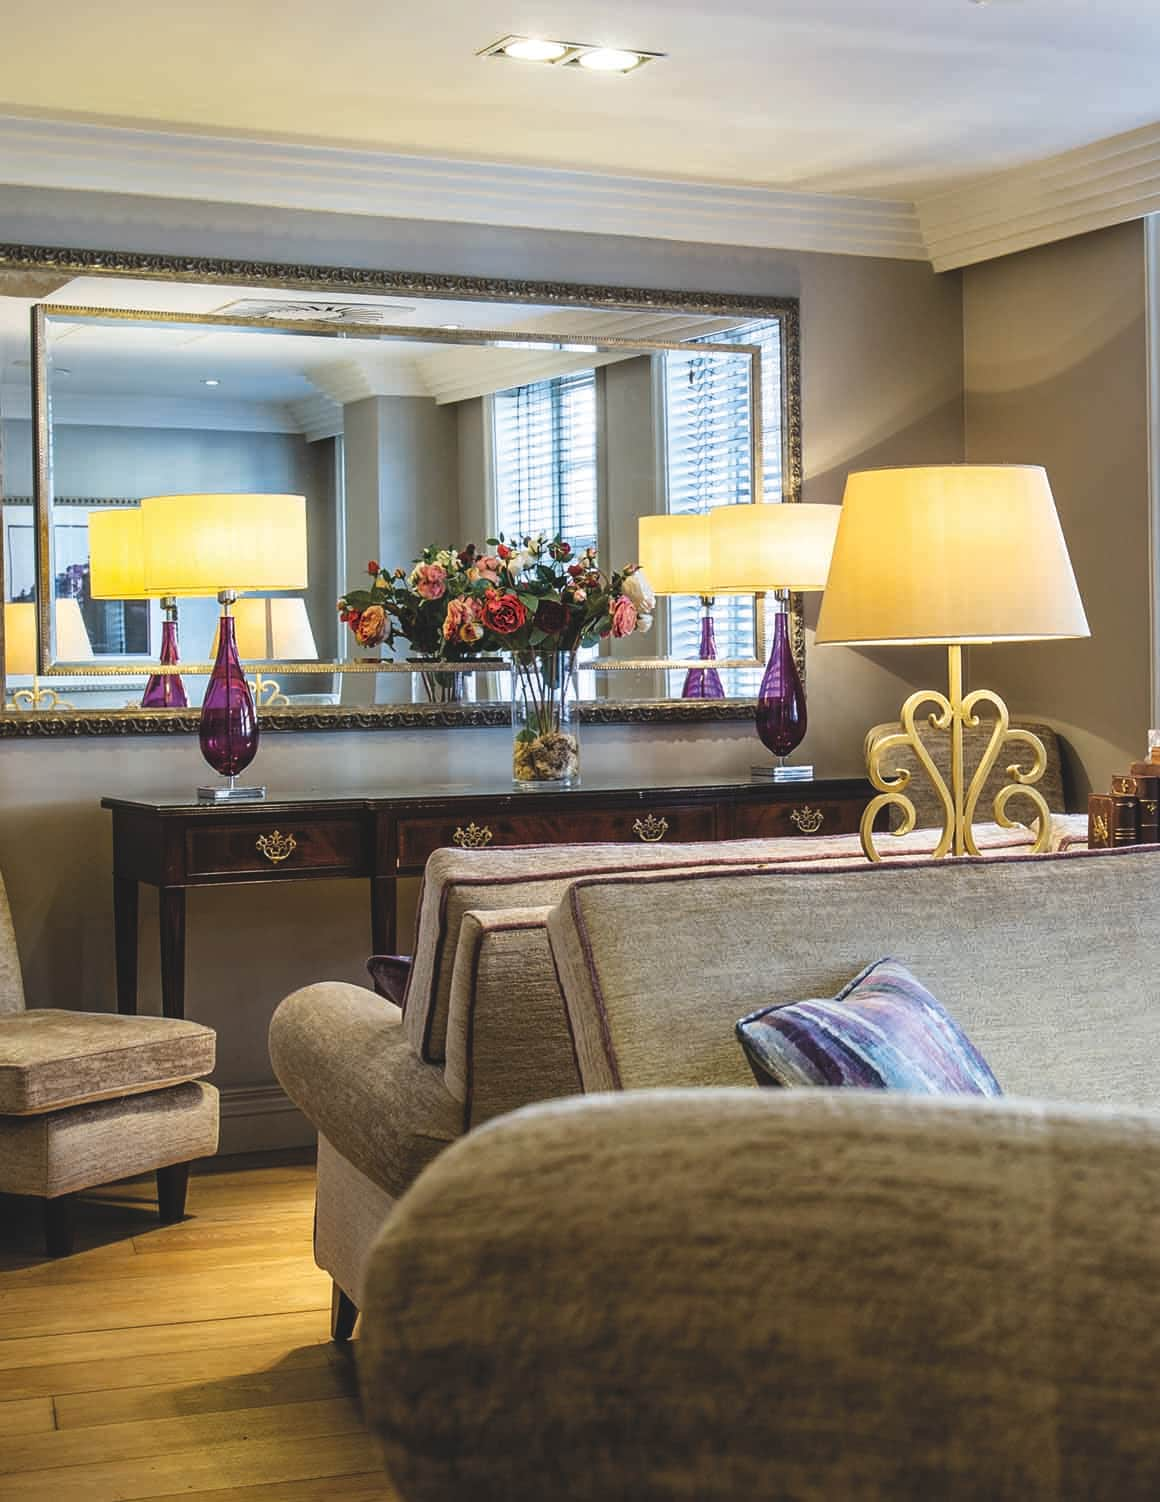 Stay at The Arden hotel in Stratford-upon-Avon